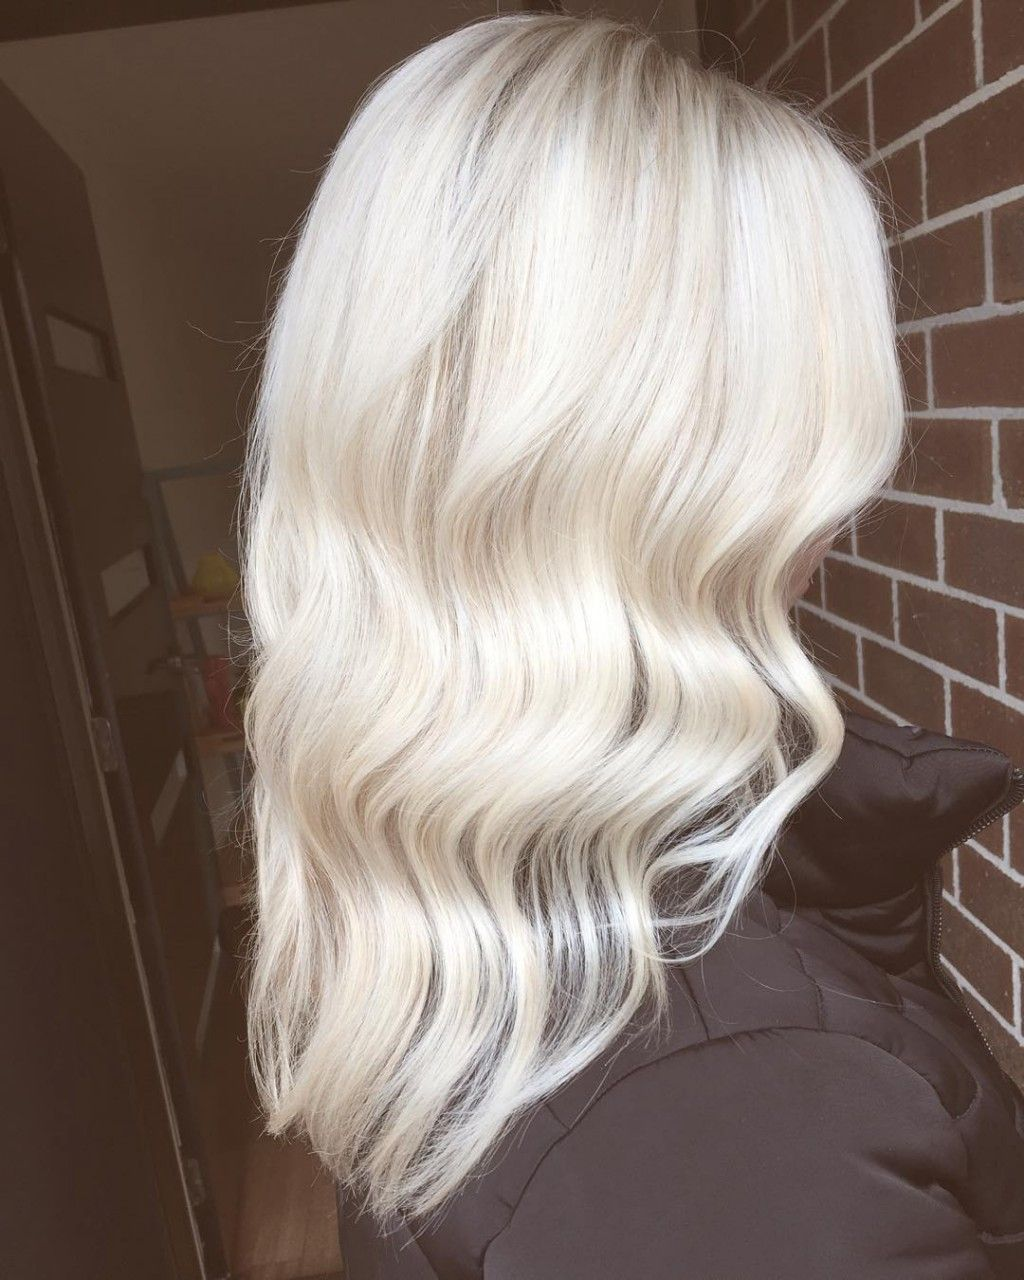 Tips on how to maintain the look and the health of platinum blonde